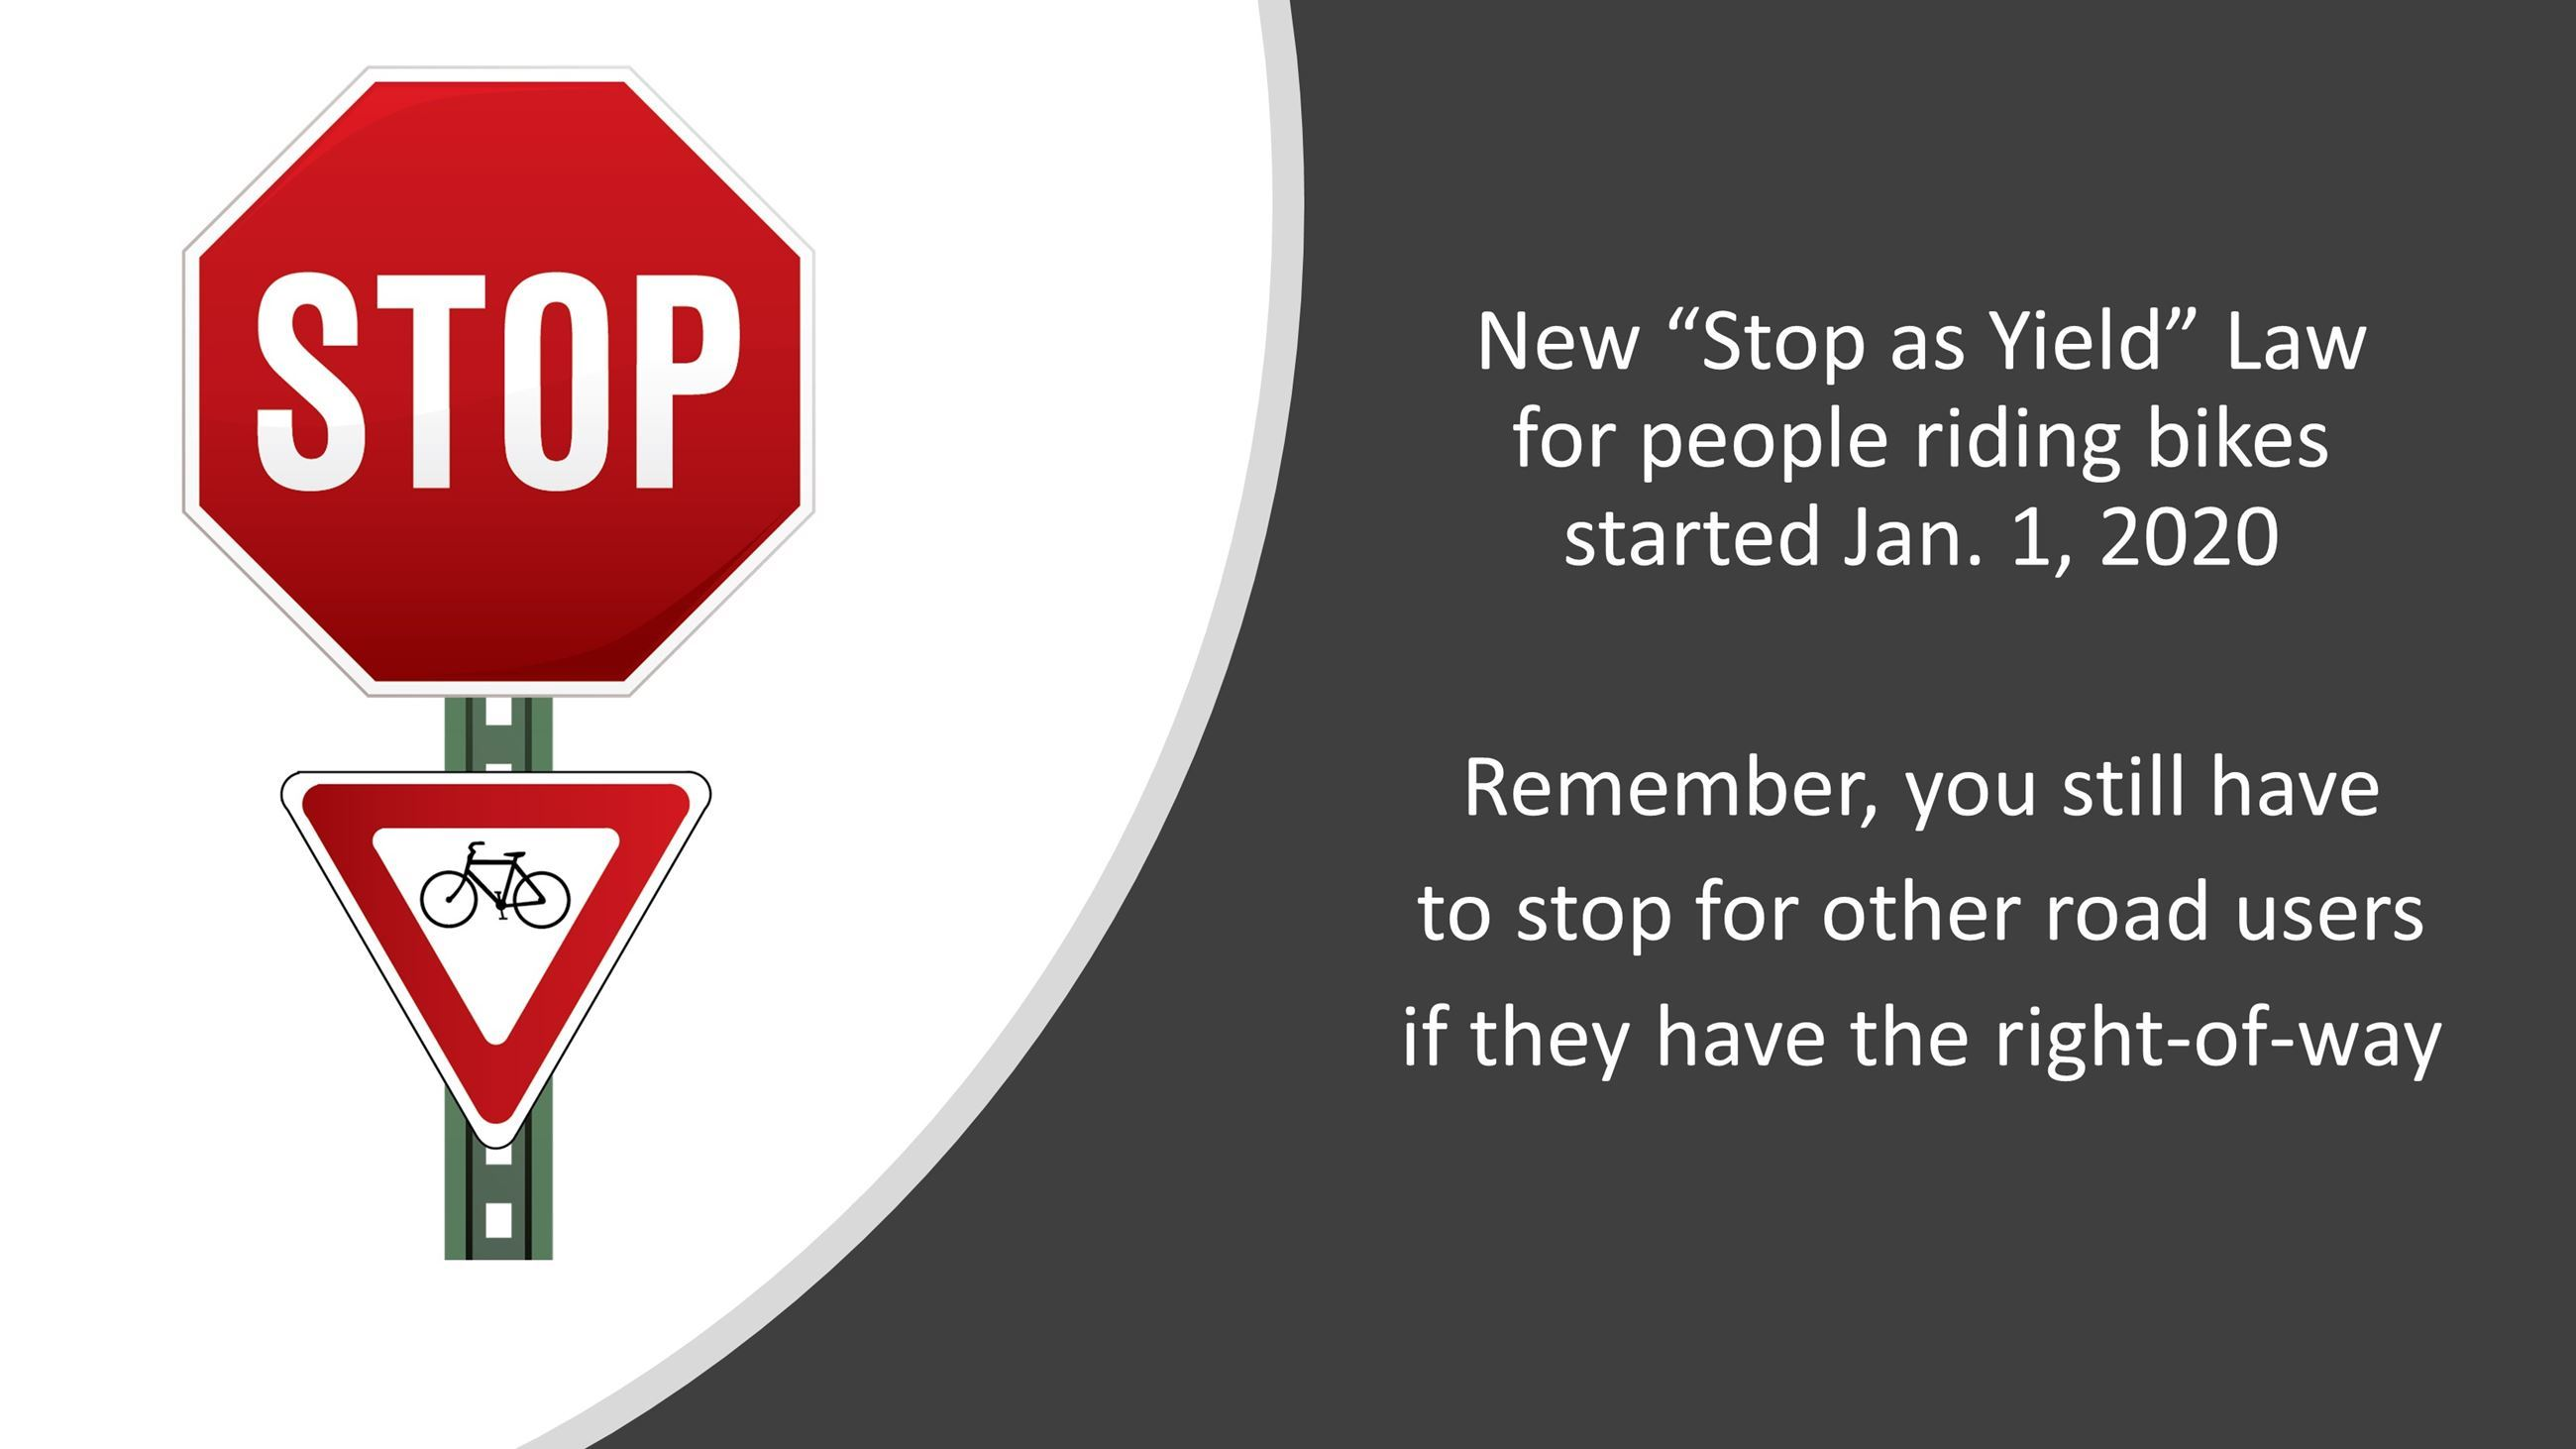 New Bike Law: Yield at Stop Signs